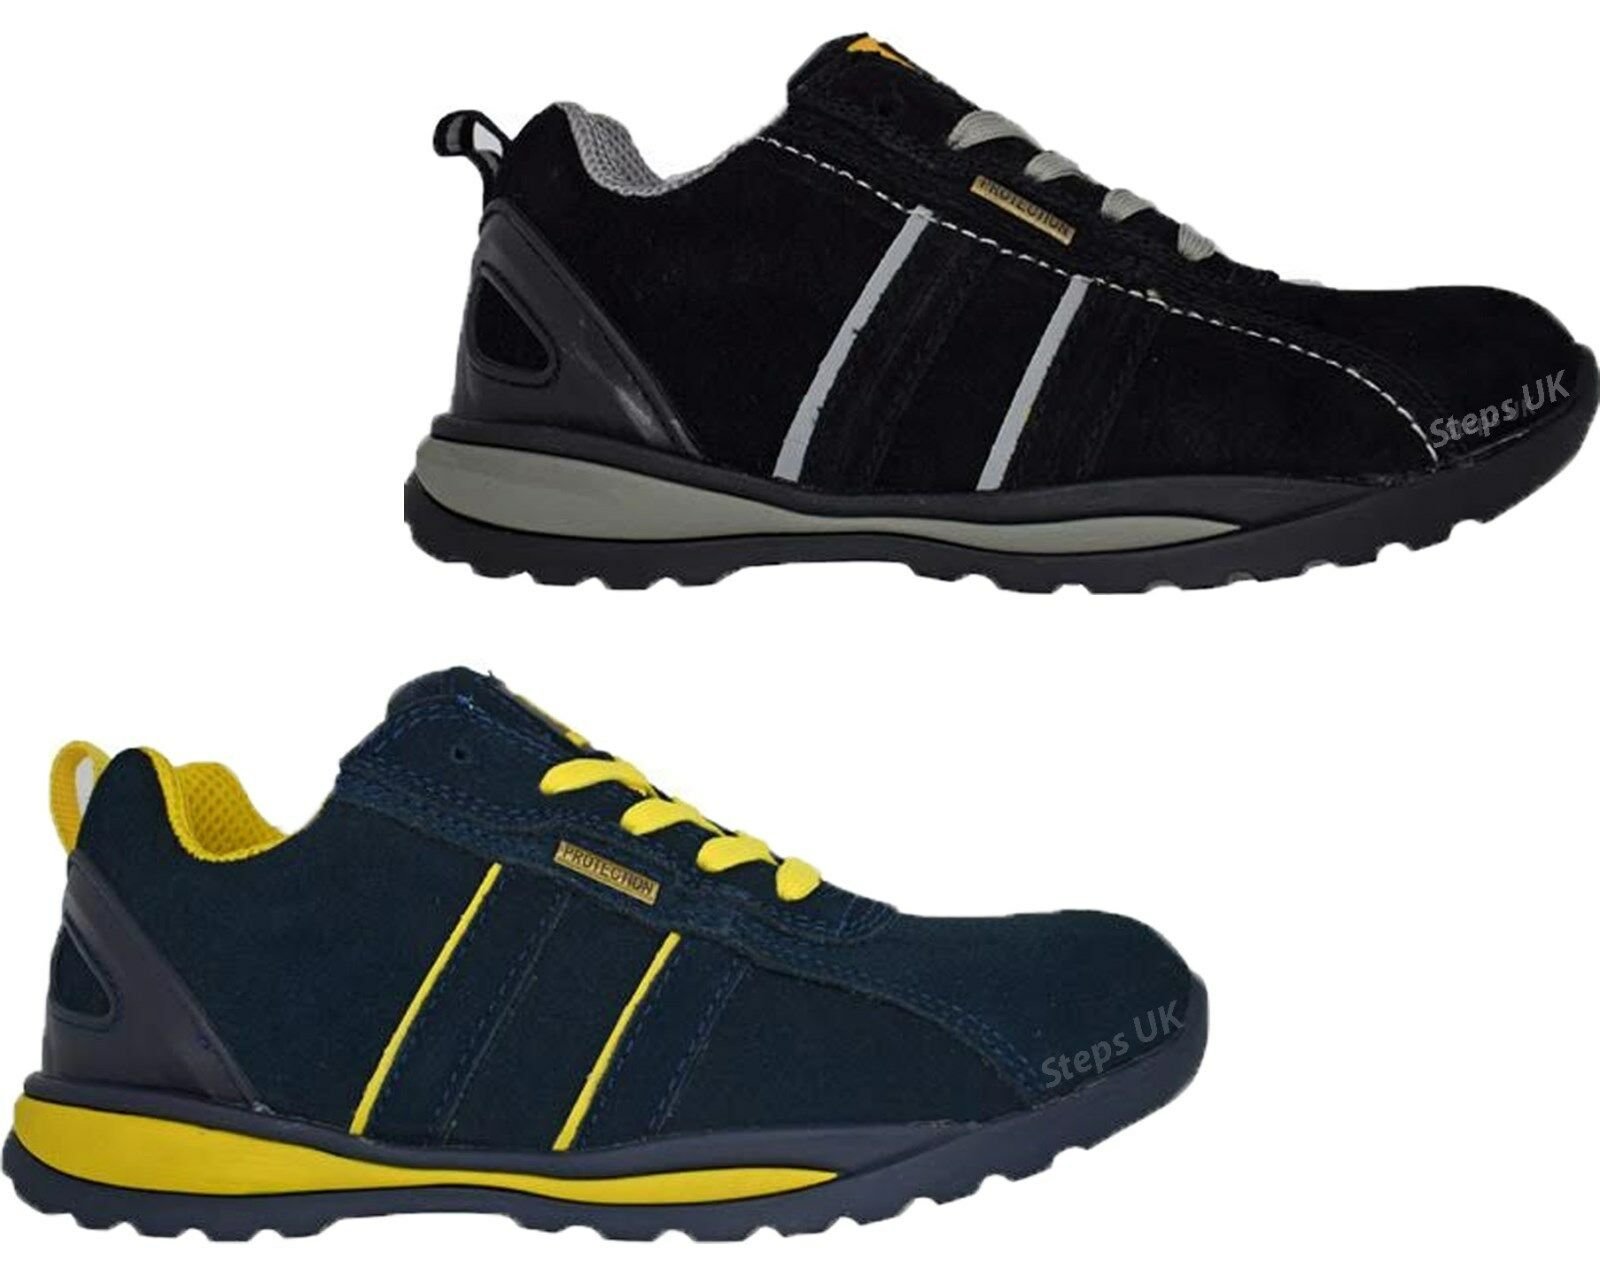 MENS SUEDUE LIGHTWEIGHT STEEL TOE CAP SAFETY TRAINER WORK LACE UP SHOES BOOTS SZ